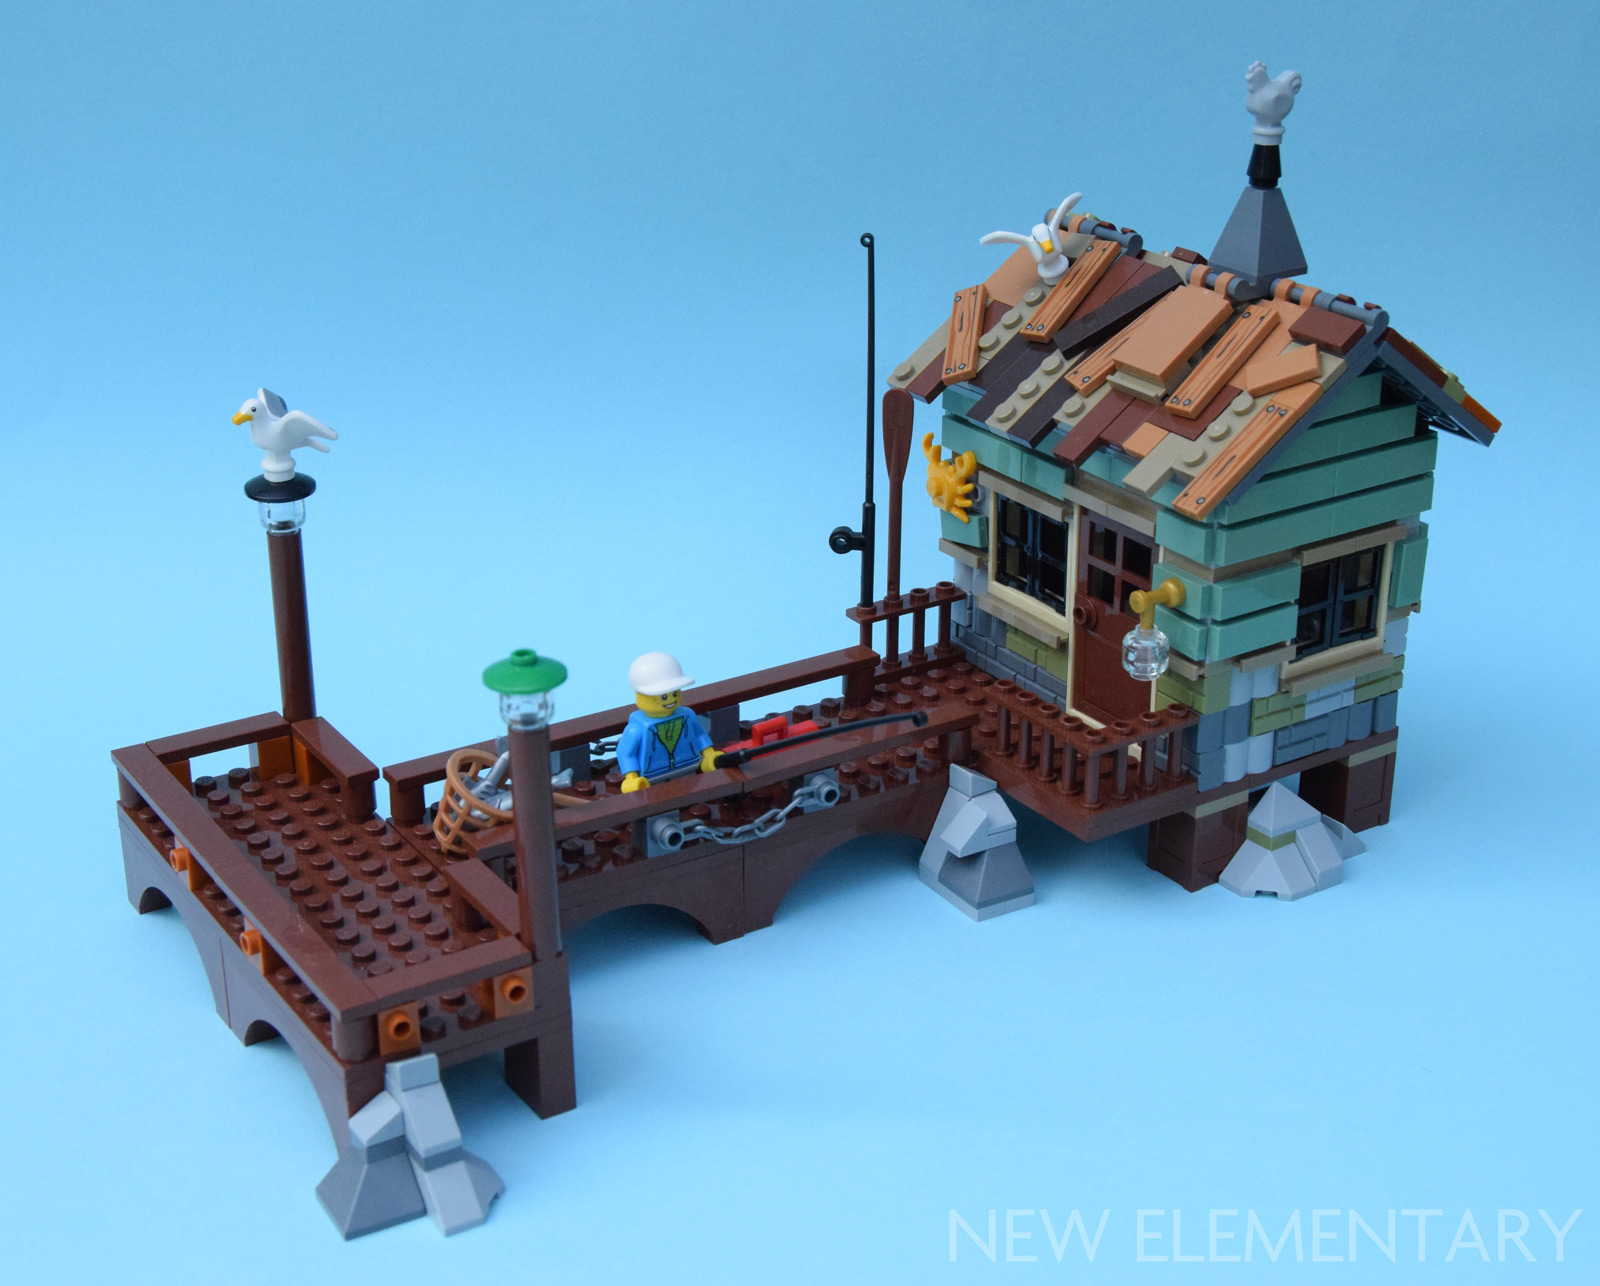 Lego ideas 21310 old fishing store one set moc for Lego old fishing store